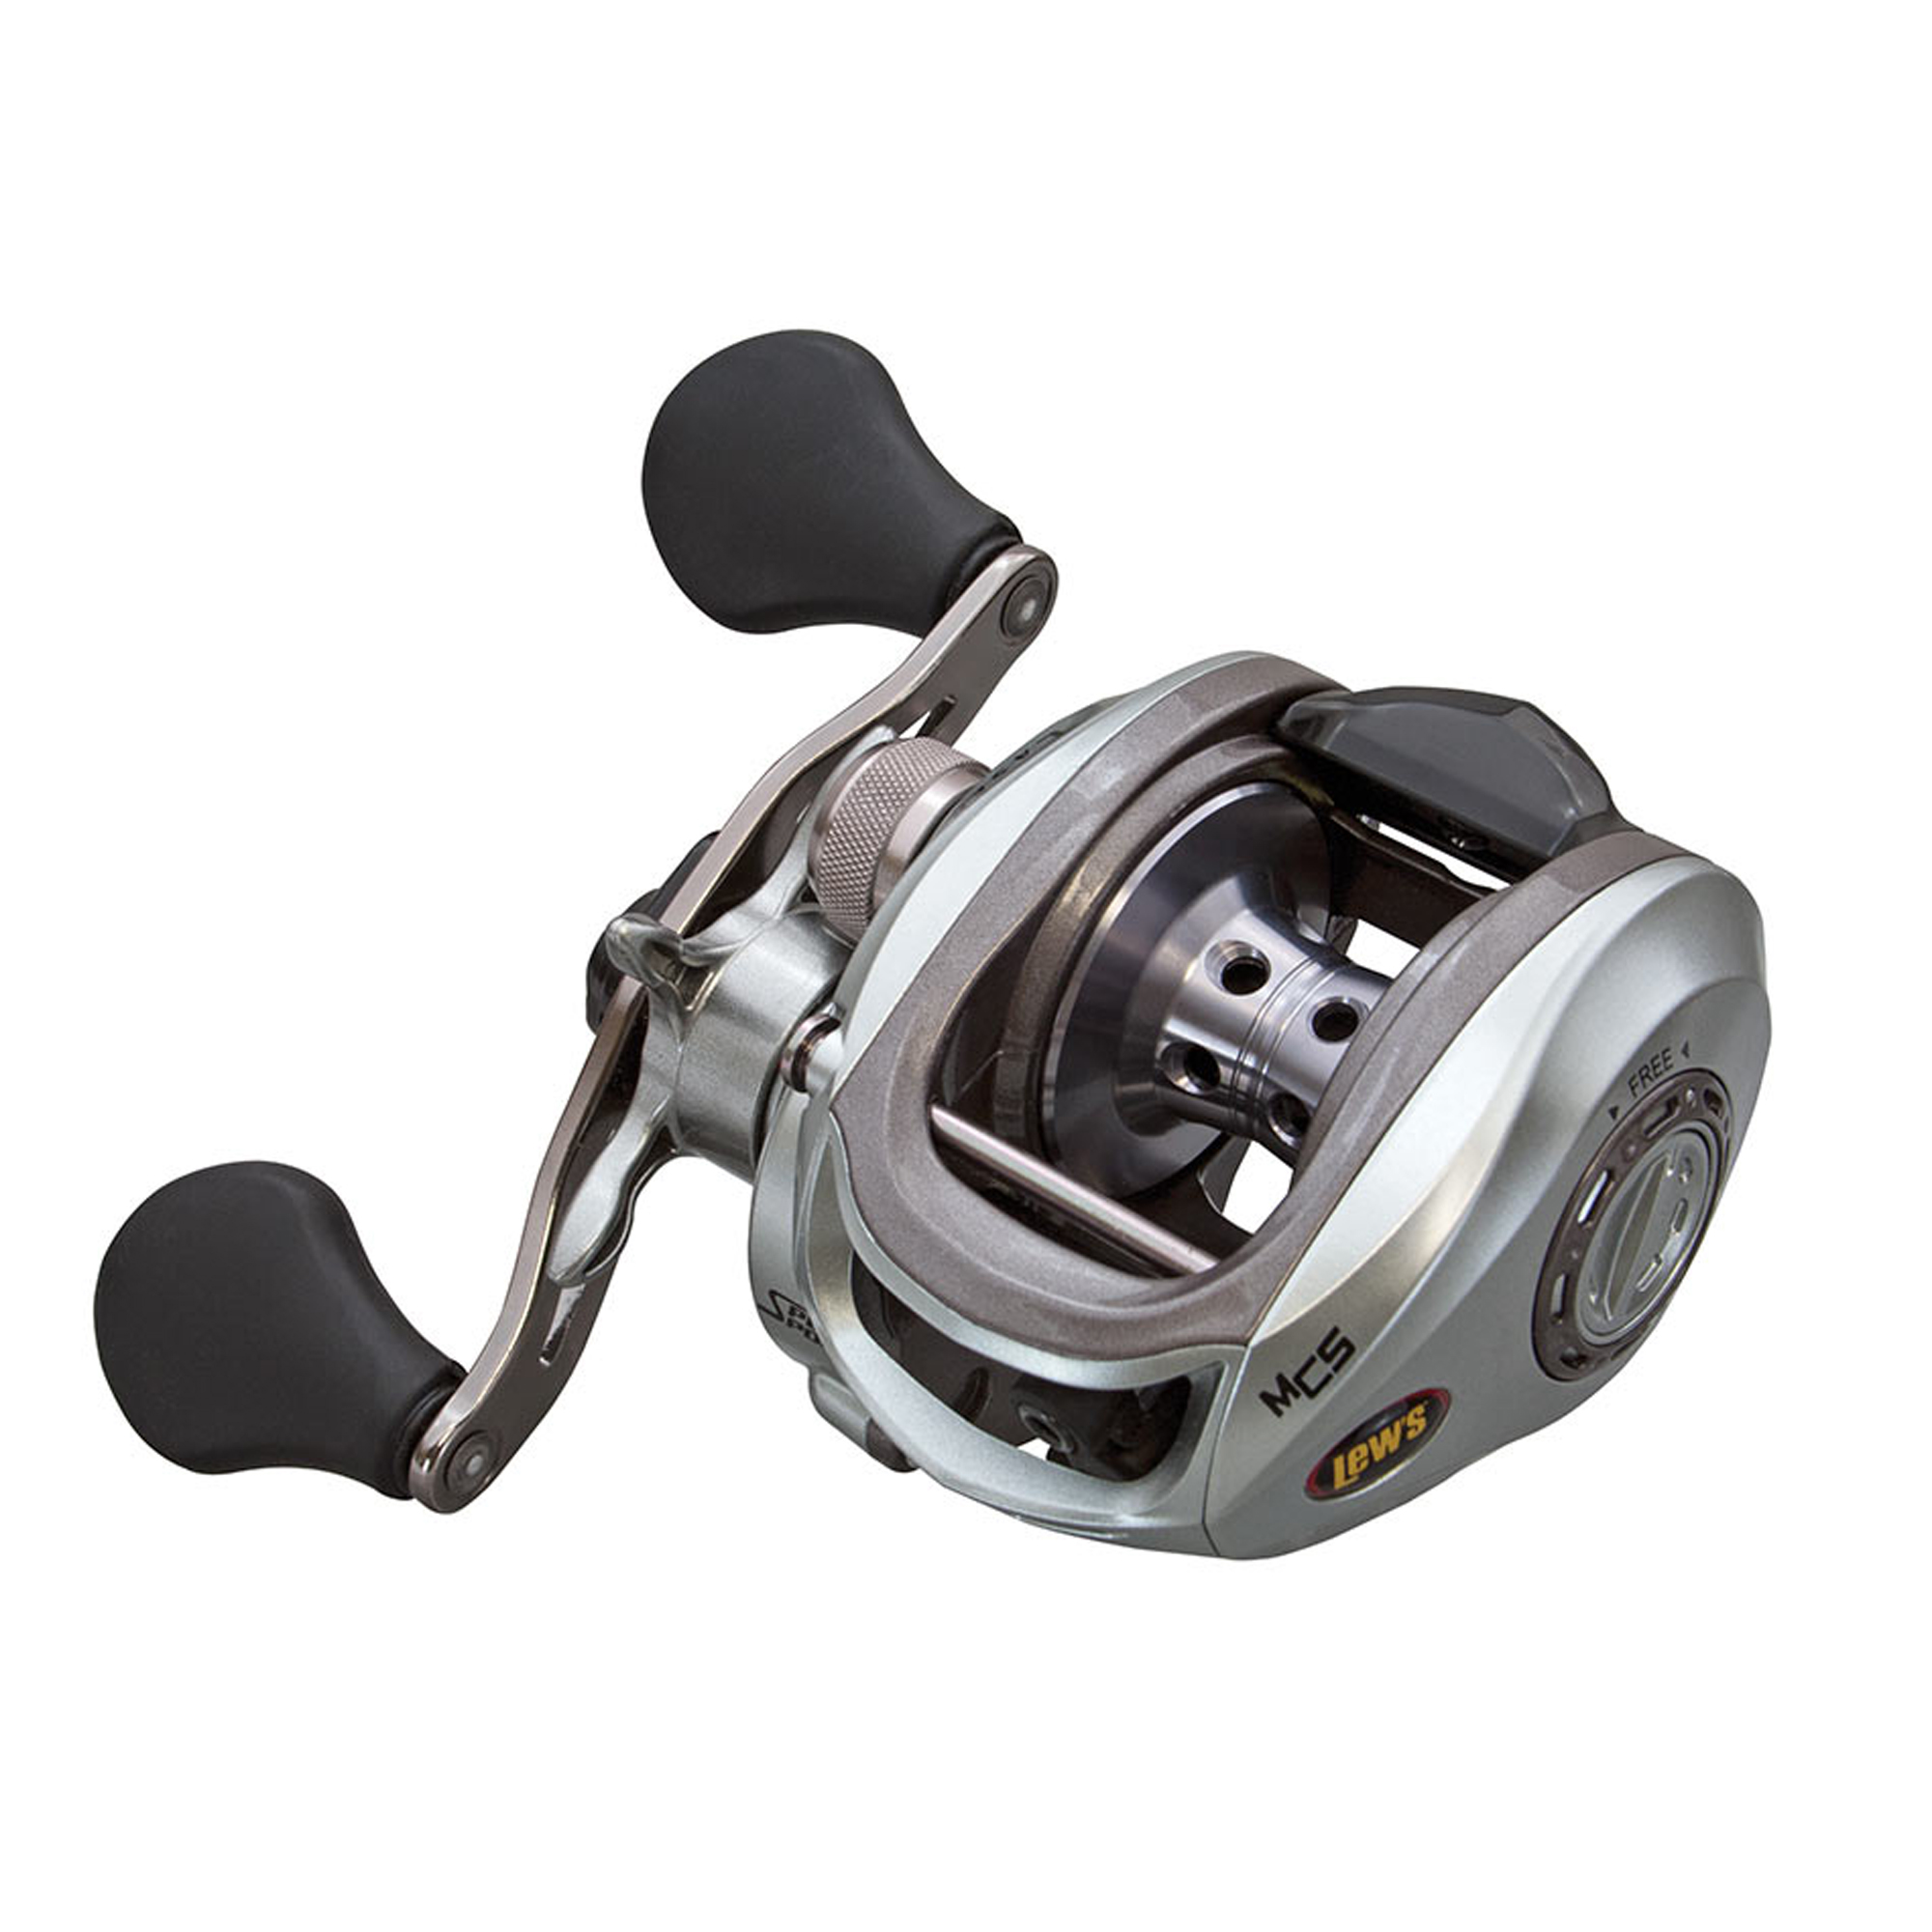 Lews Fishing L MG Speed Spool Series Reel LSG1HMG, Right Hand by Supplier Generic